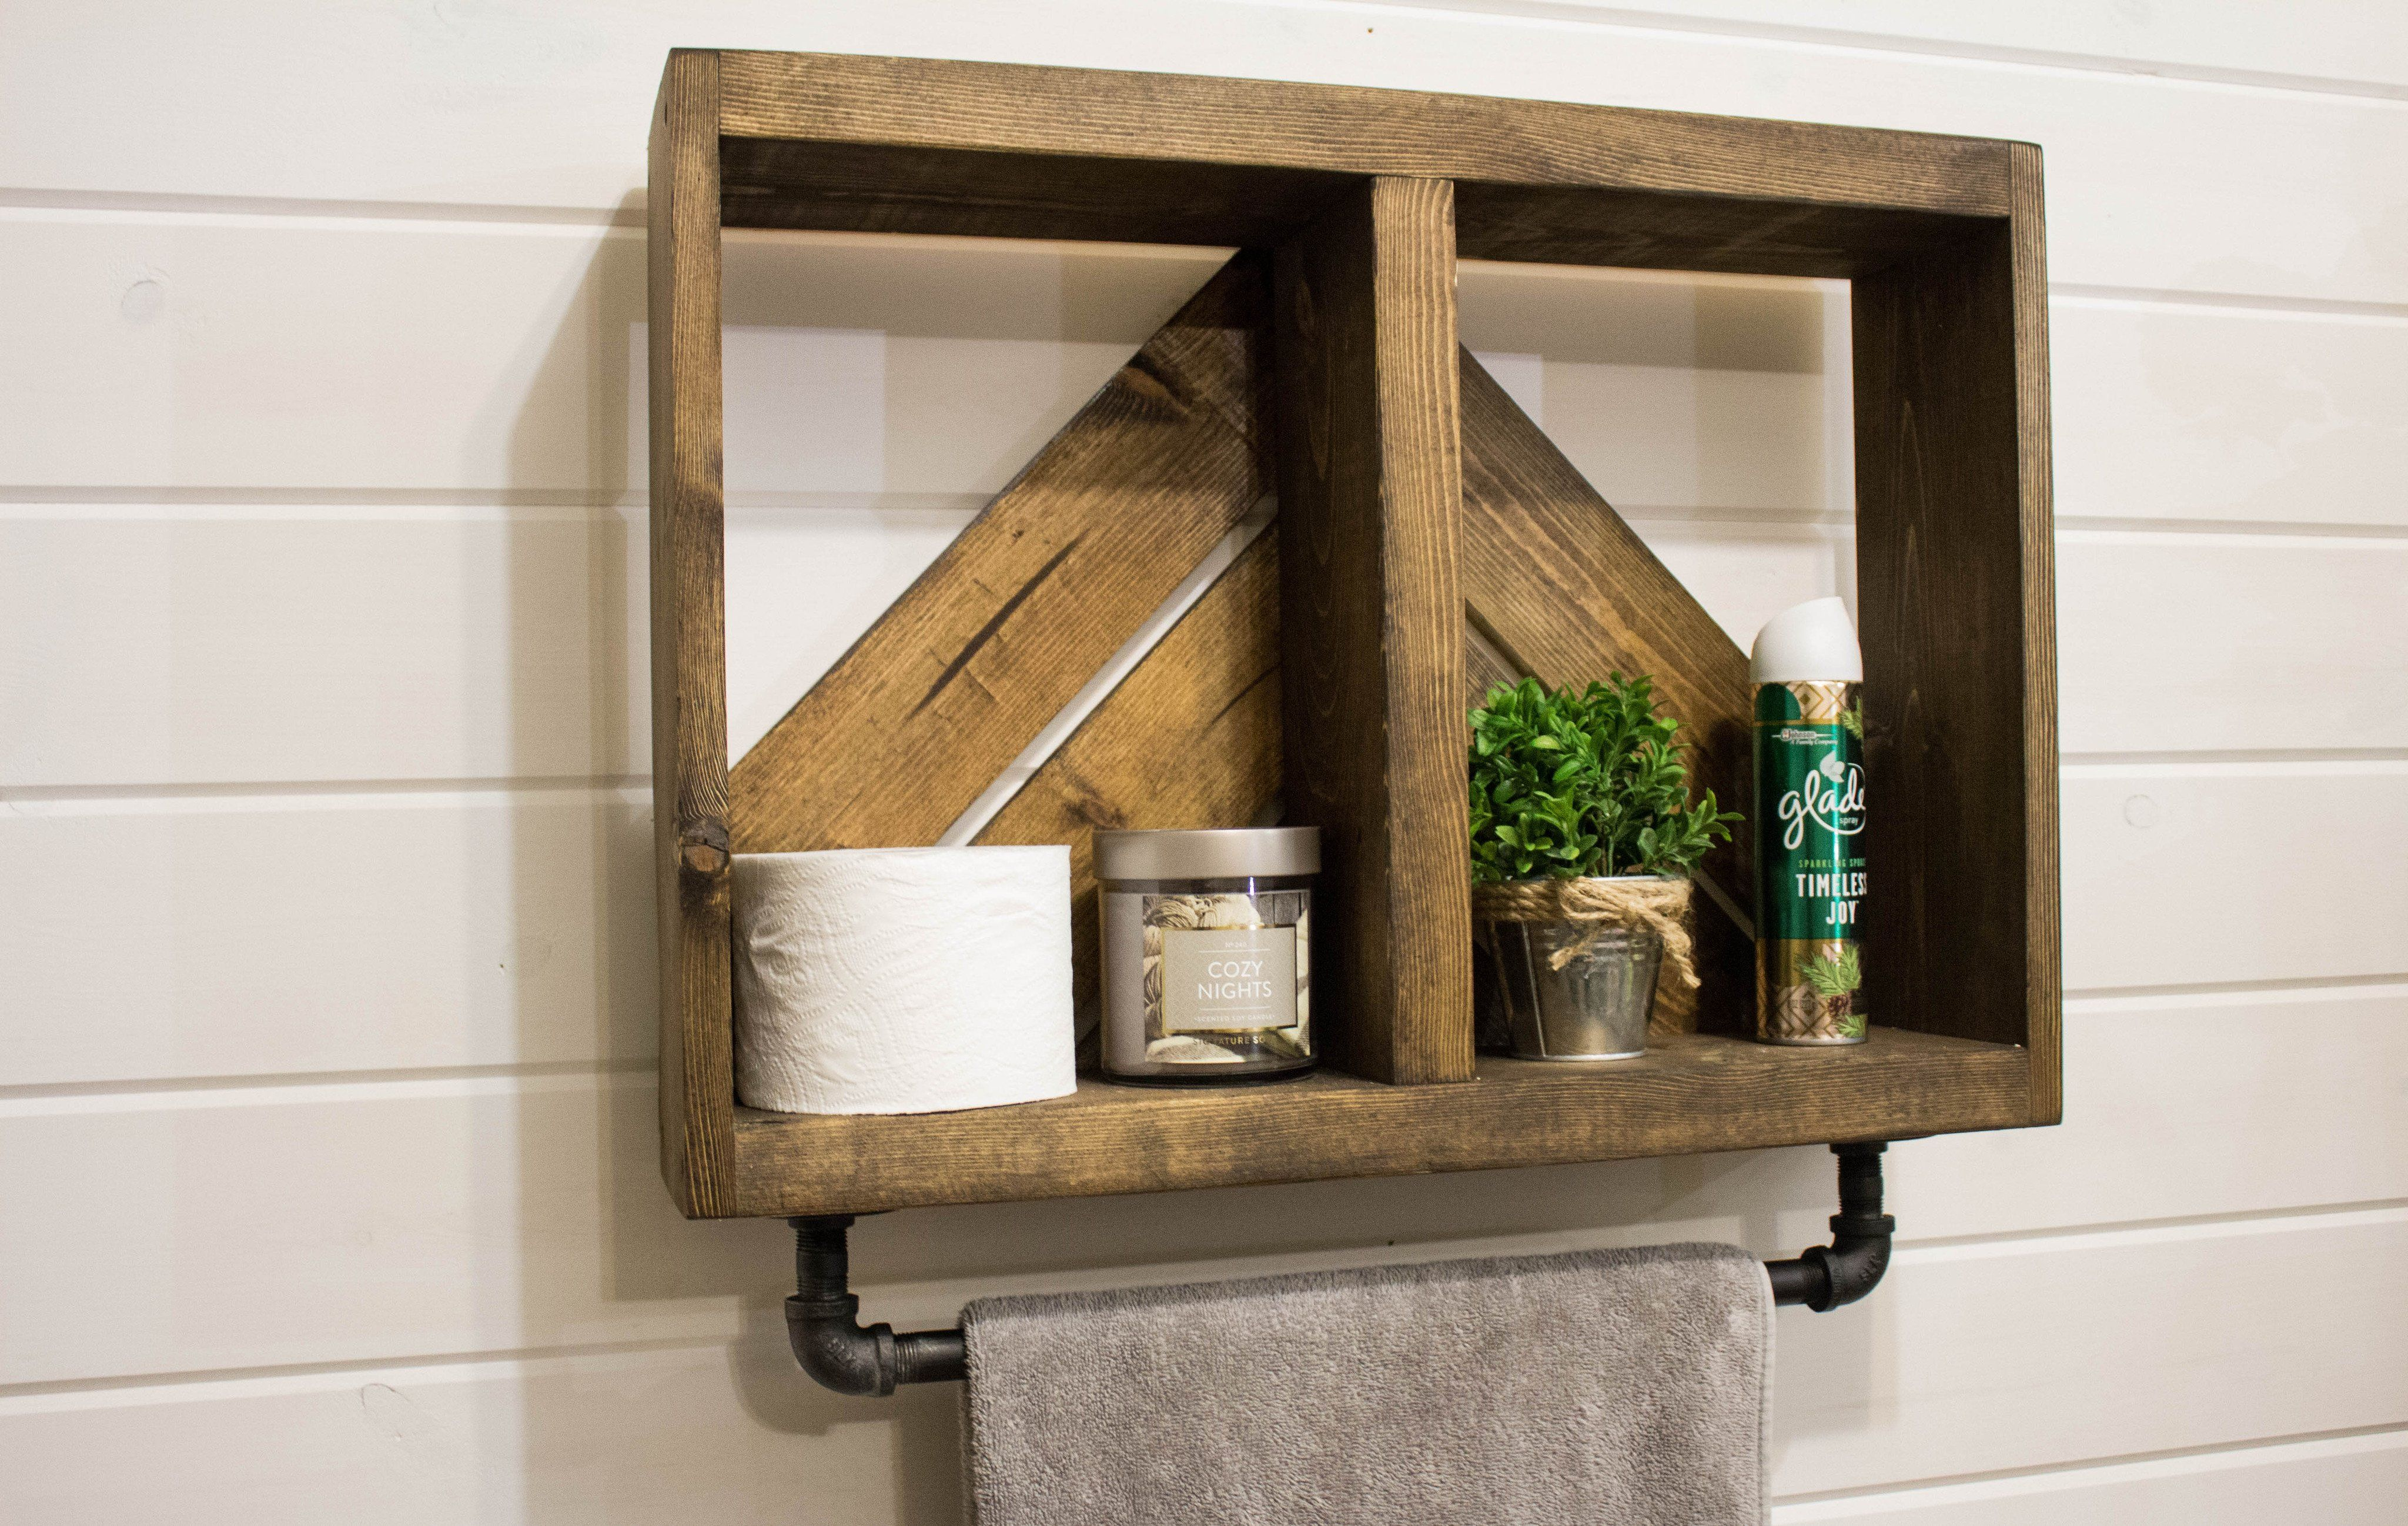 Rustic Arrow Bath Wall Shelf with Towel Bar | Products | Pinterest ...